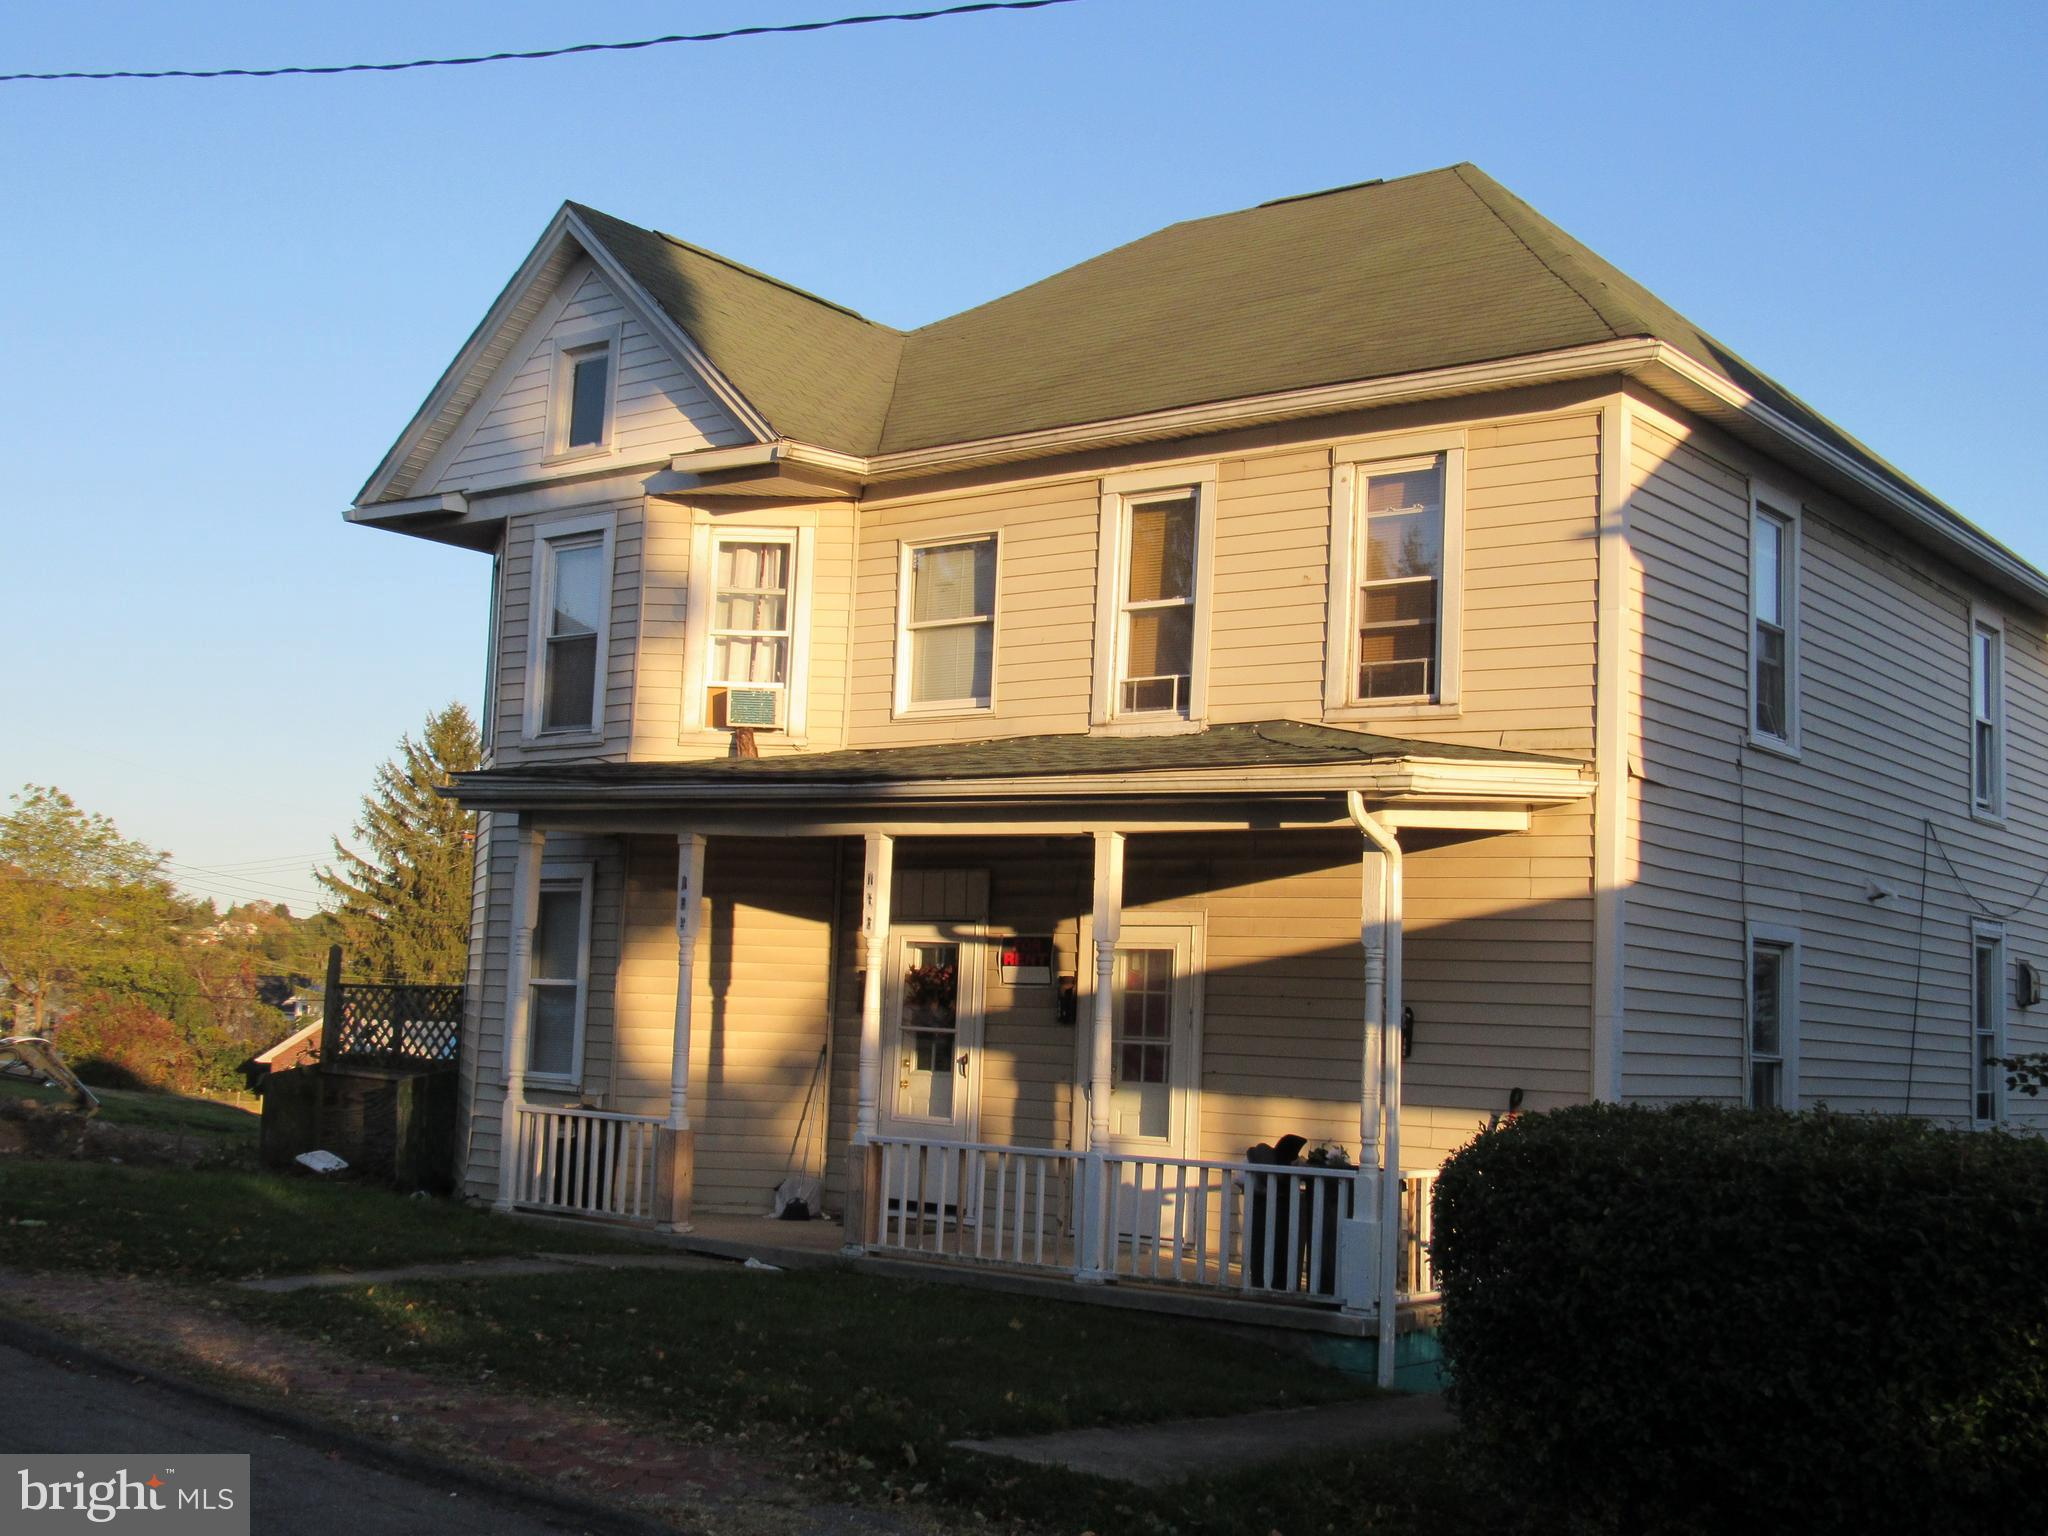 164-166 MAPLE STREET, FROSTBURG, MD 21532